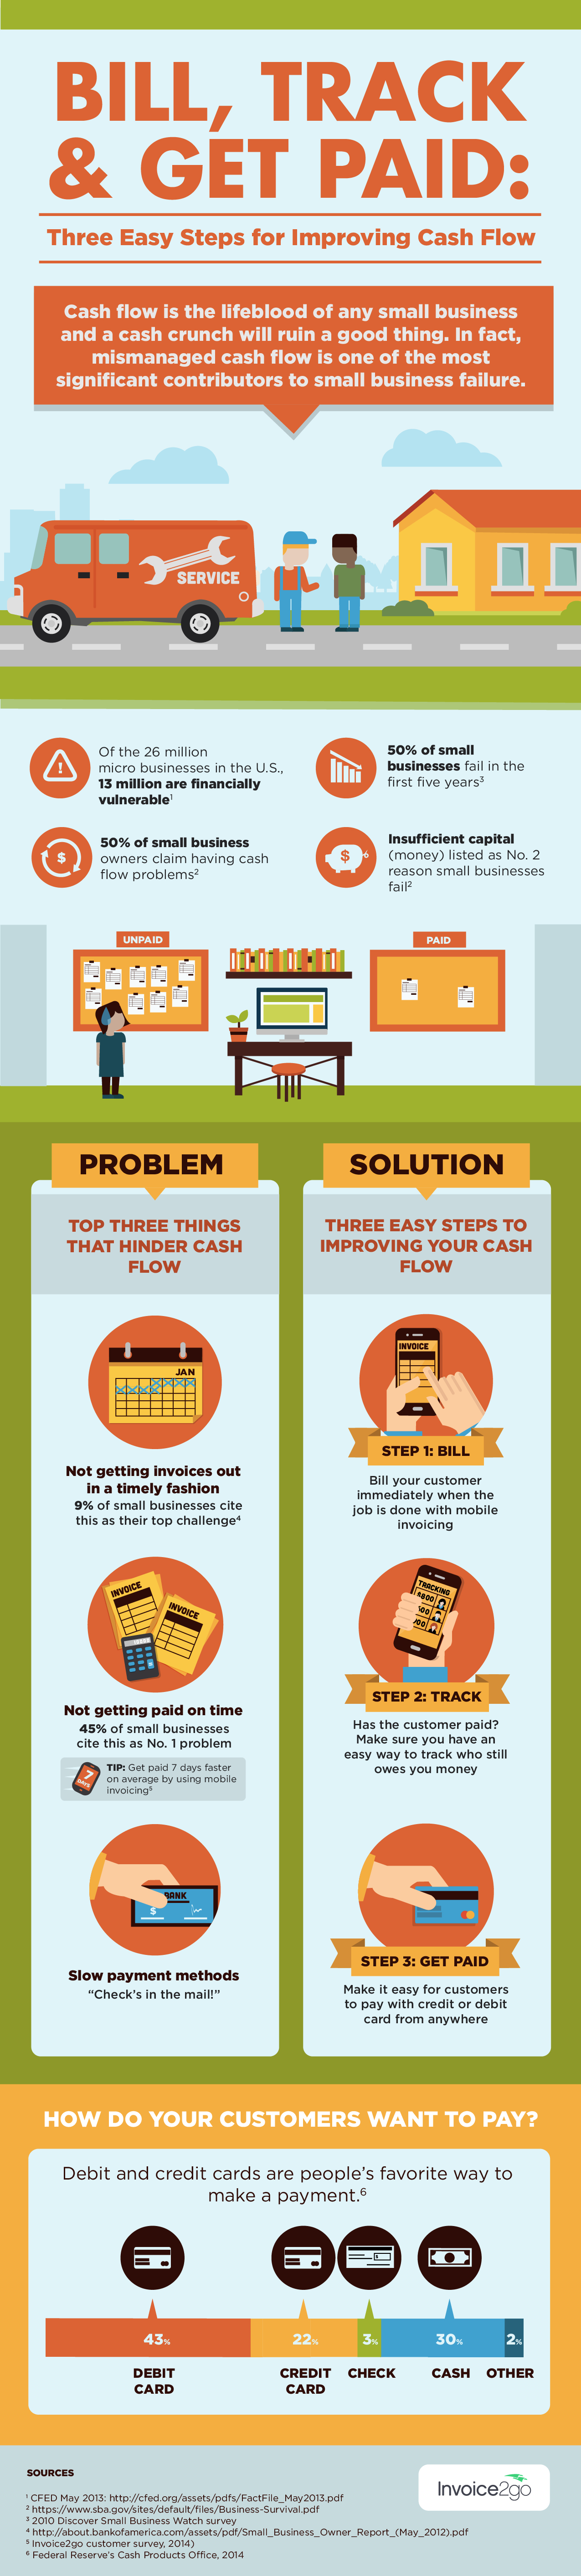 How to manage cashflow as a small business owner (Infographic)